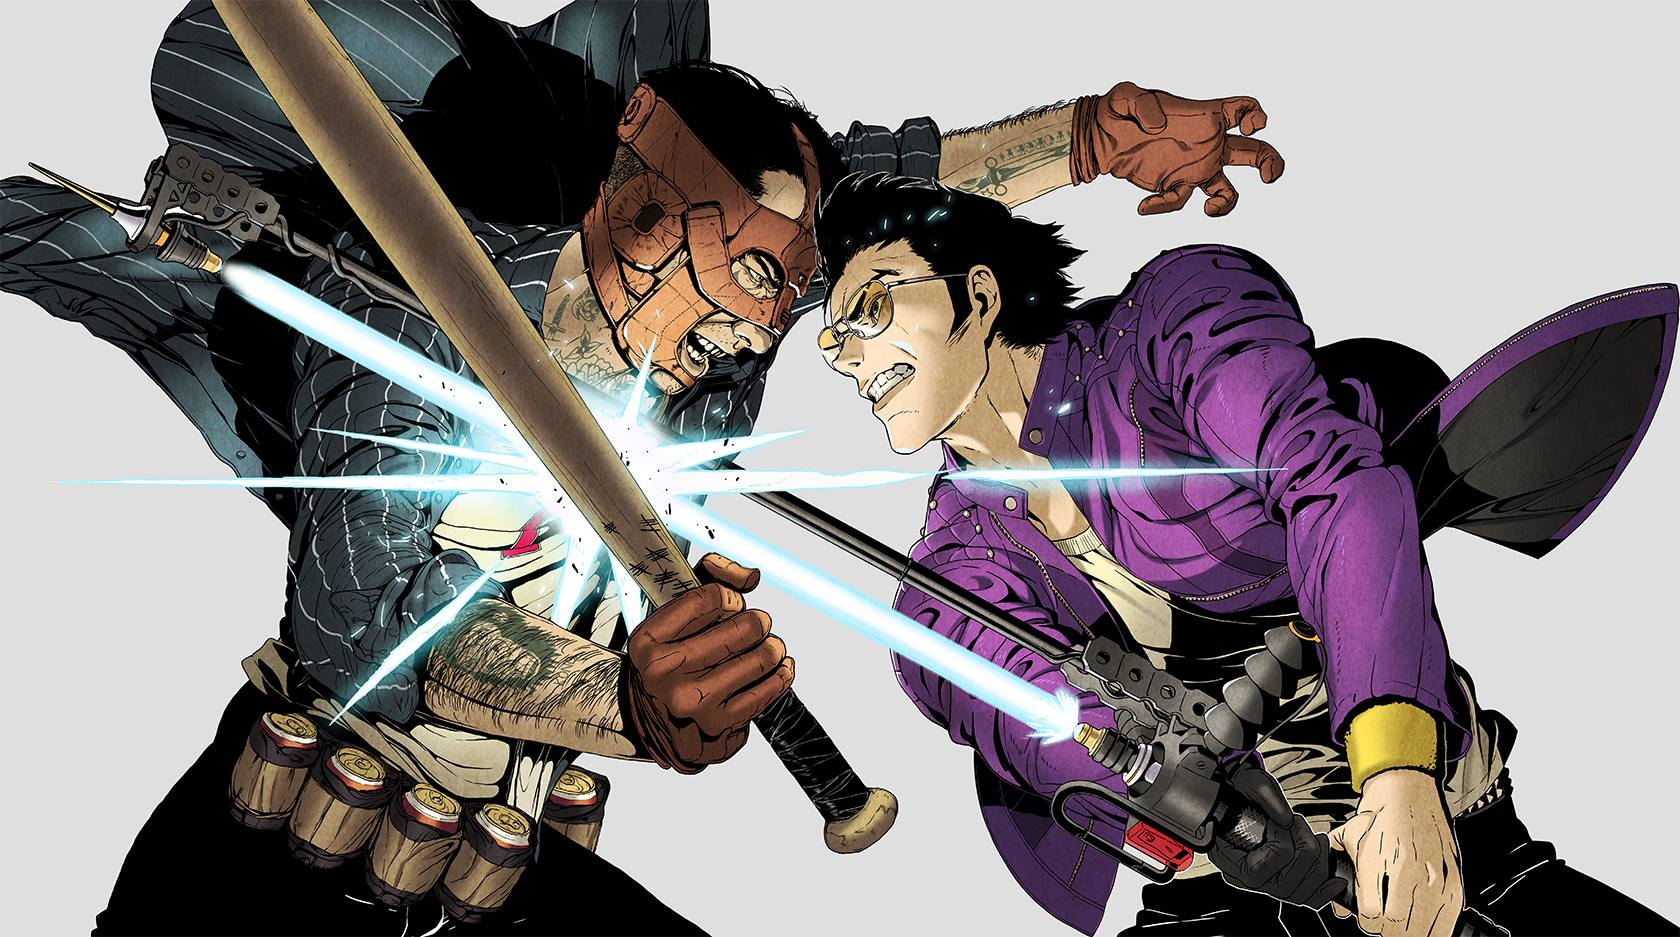 『Travis Strikes Again: No More Heroes』の公式サイトがオープン!